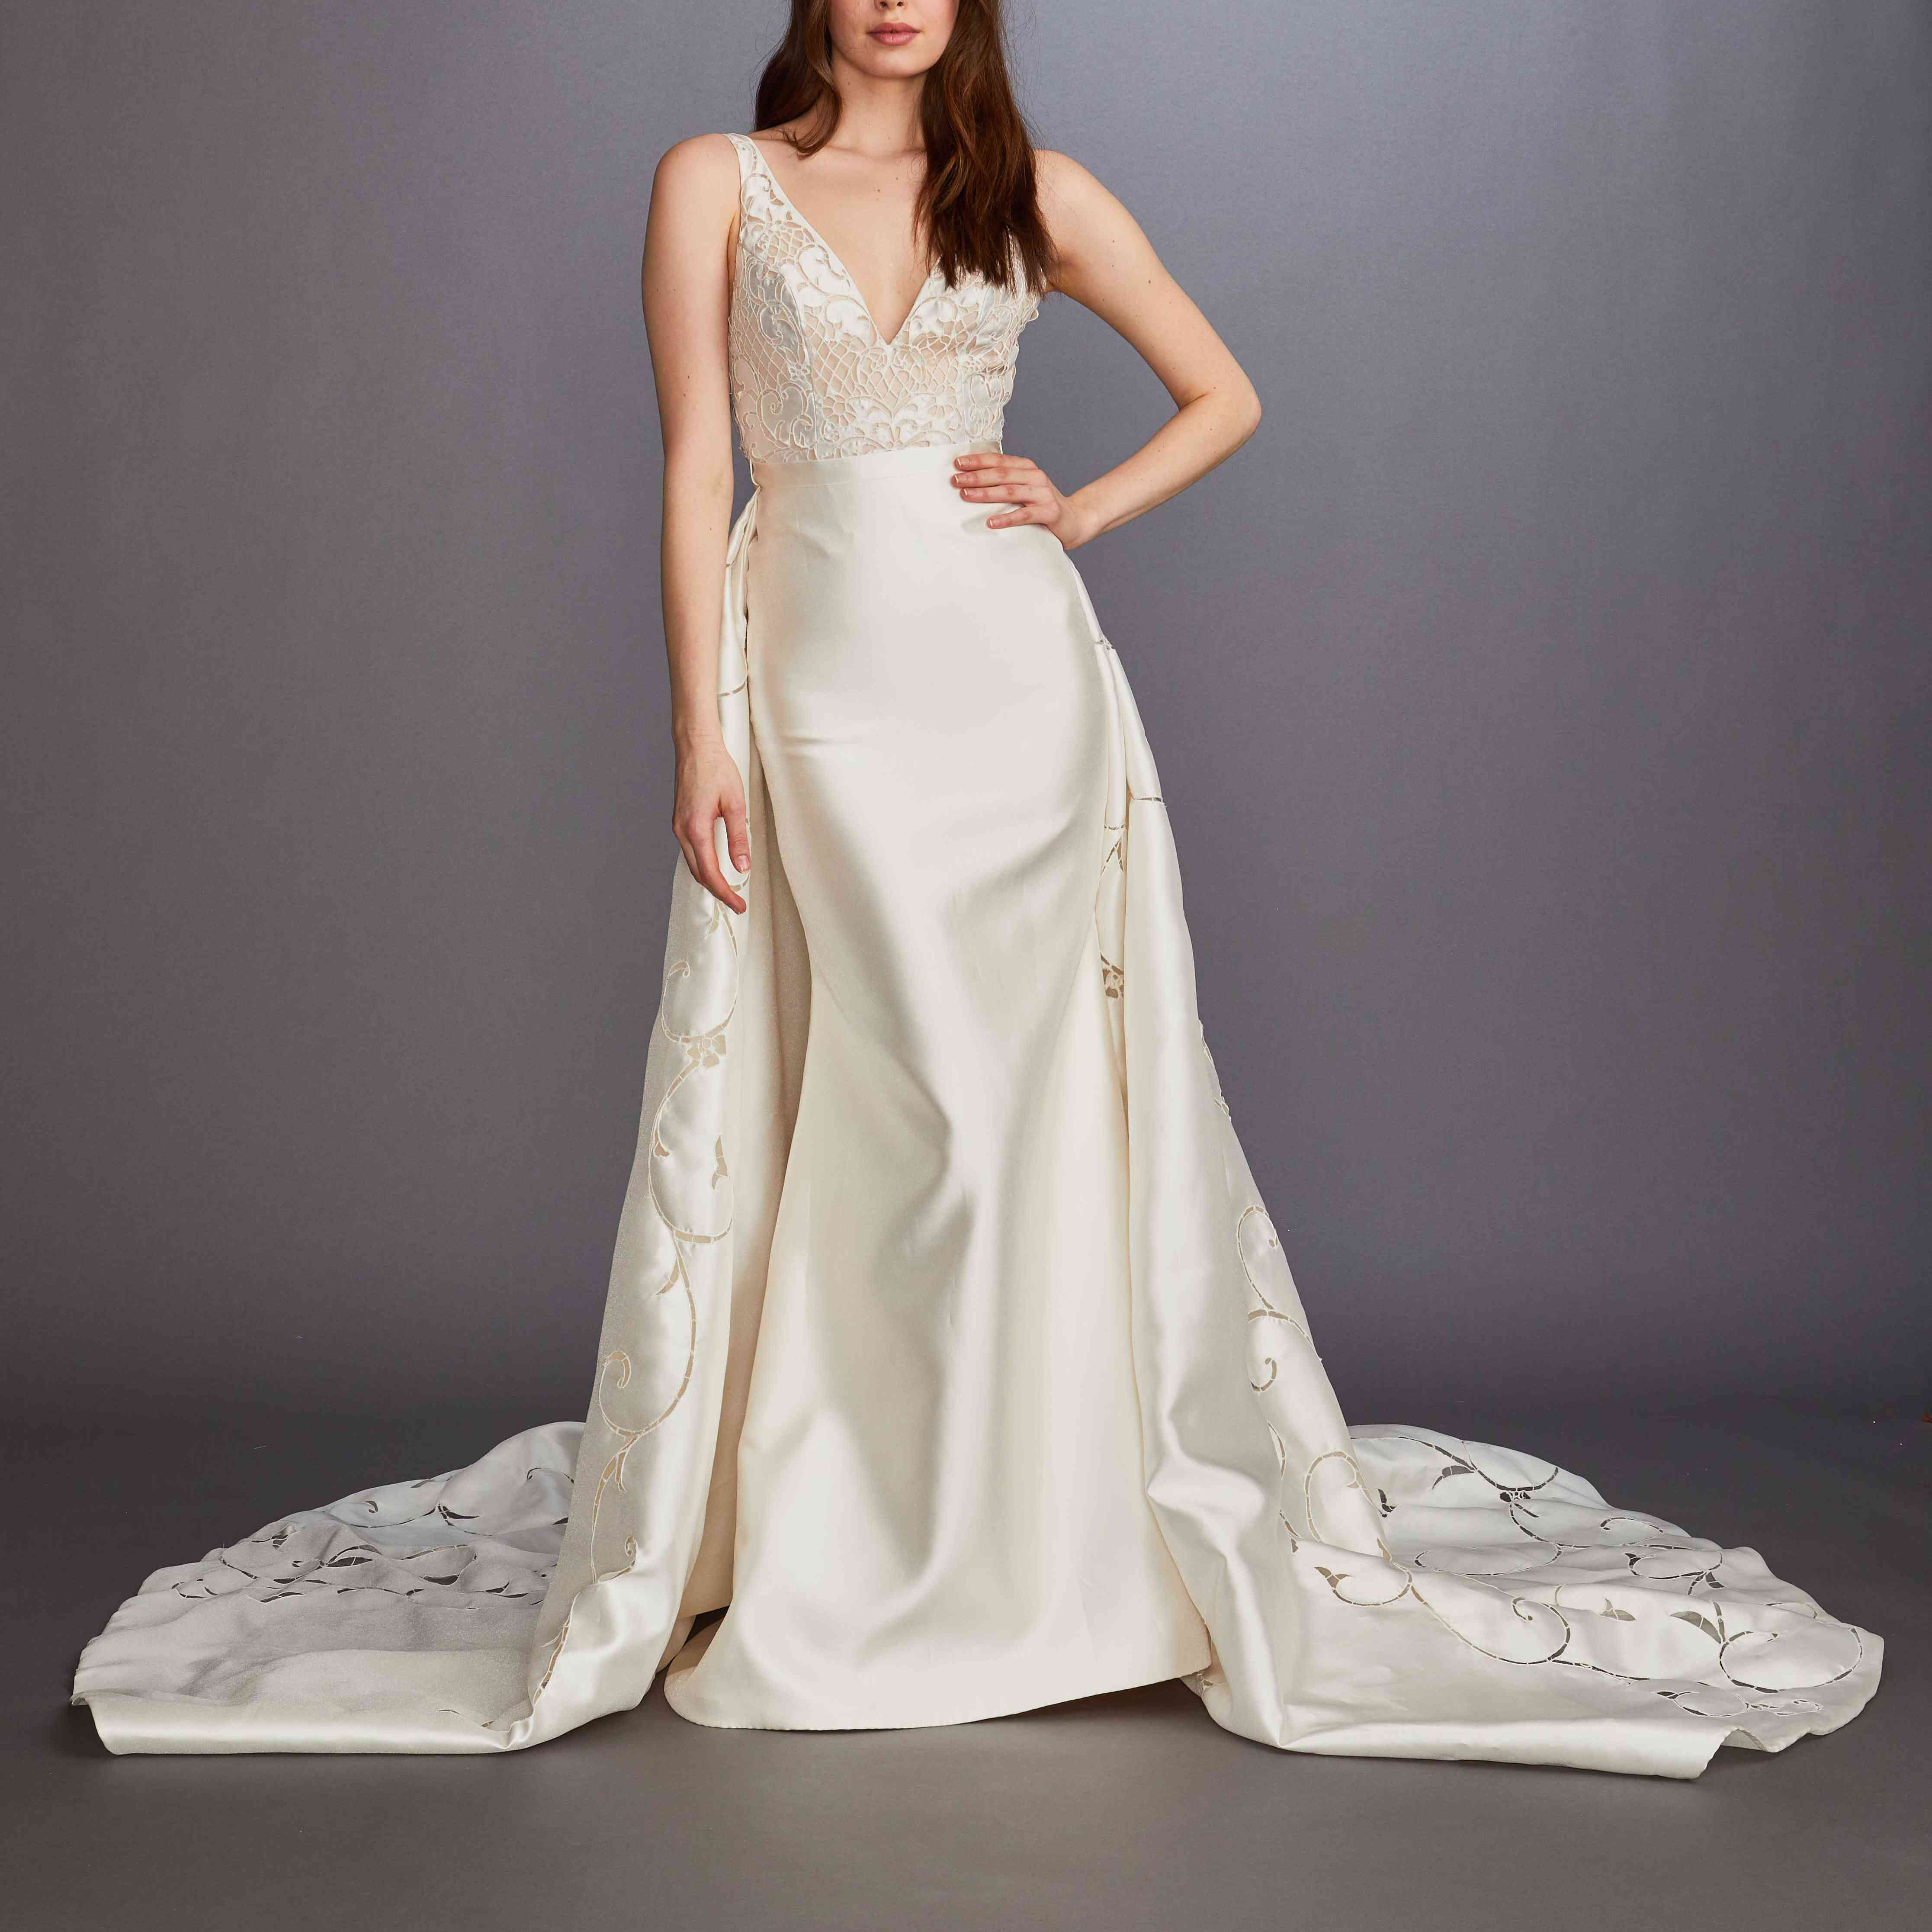 Aster fit-and-flare wedding dress lazaro